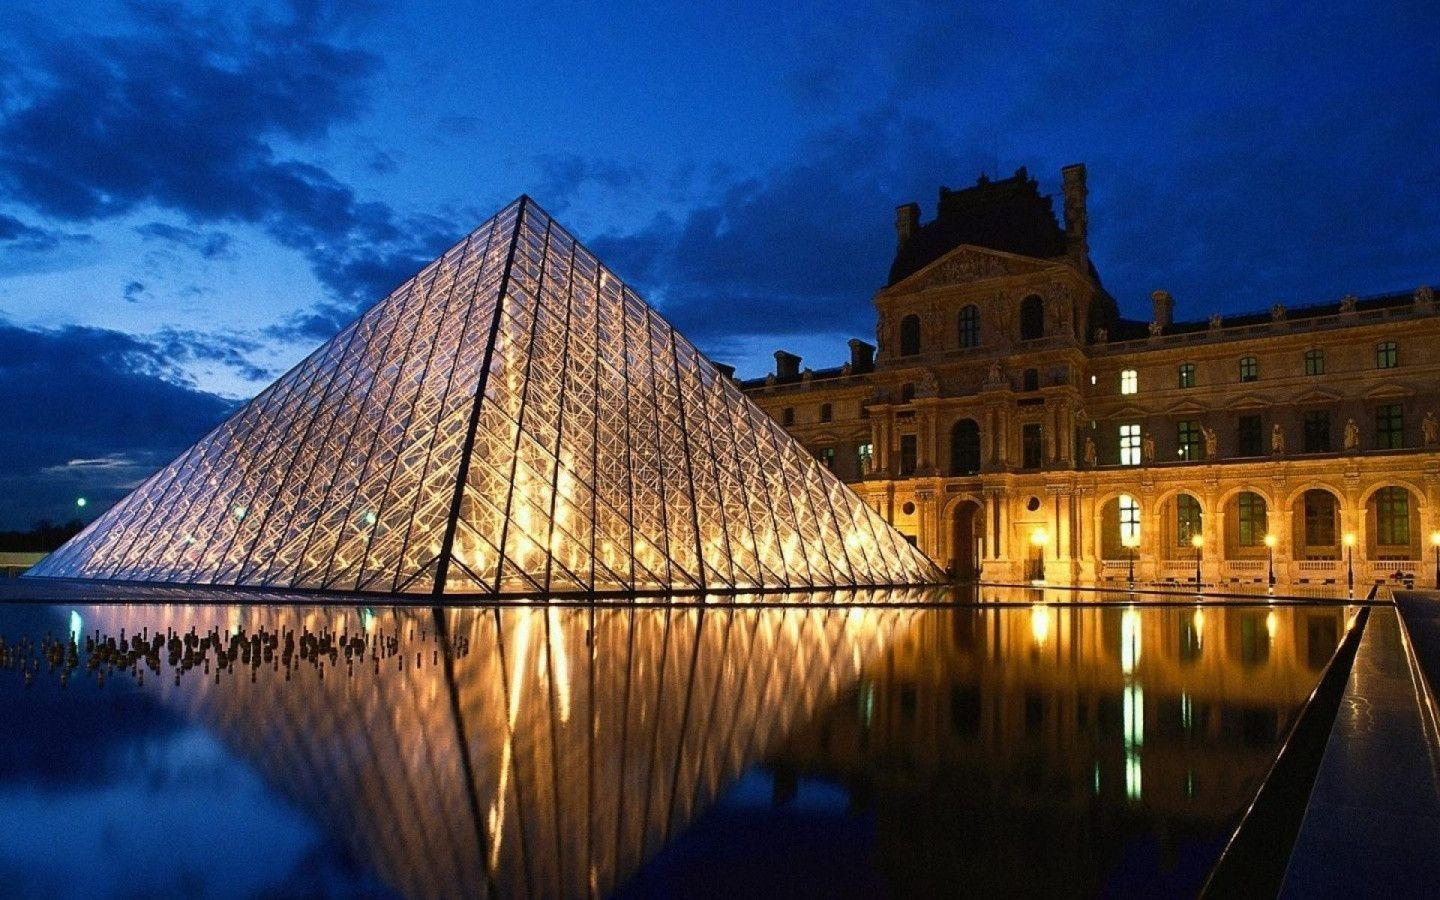 1440x900 Louvre Paris desktop PC and Mac wallpapers